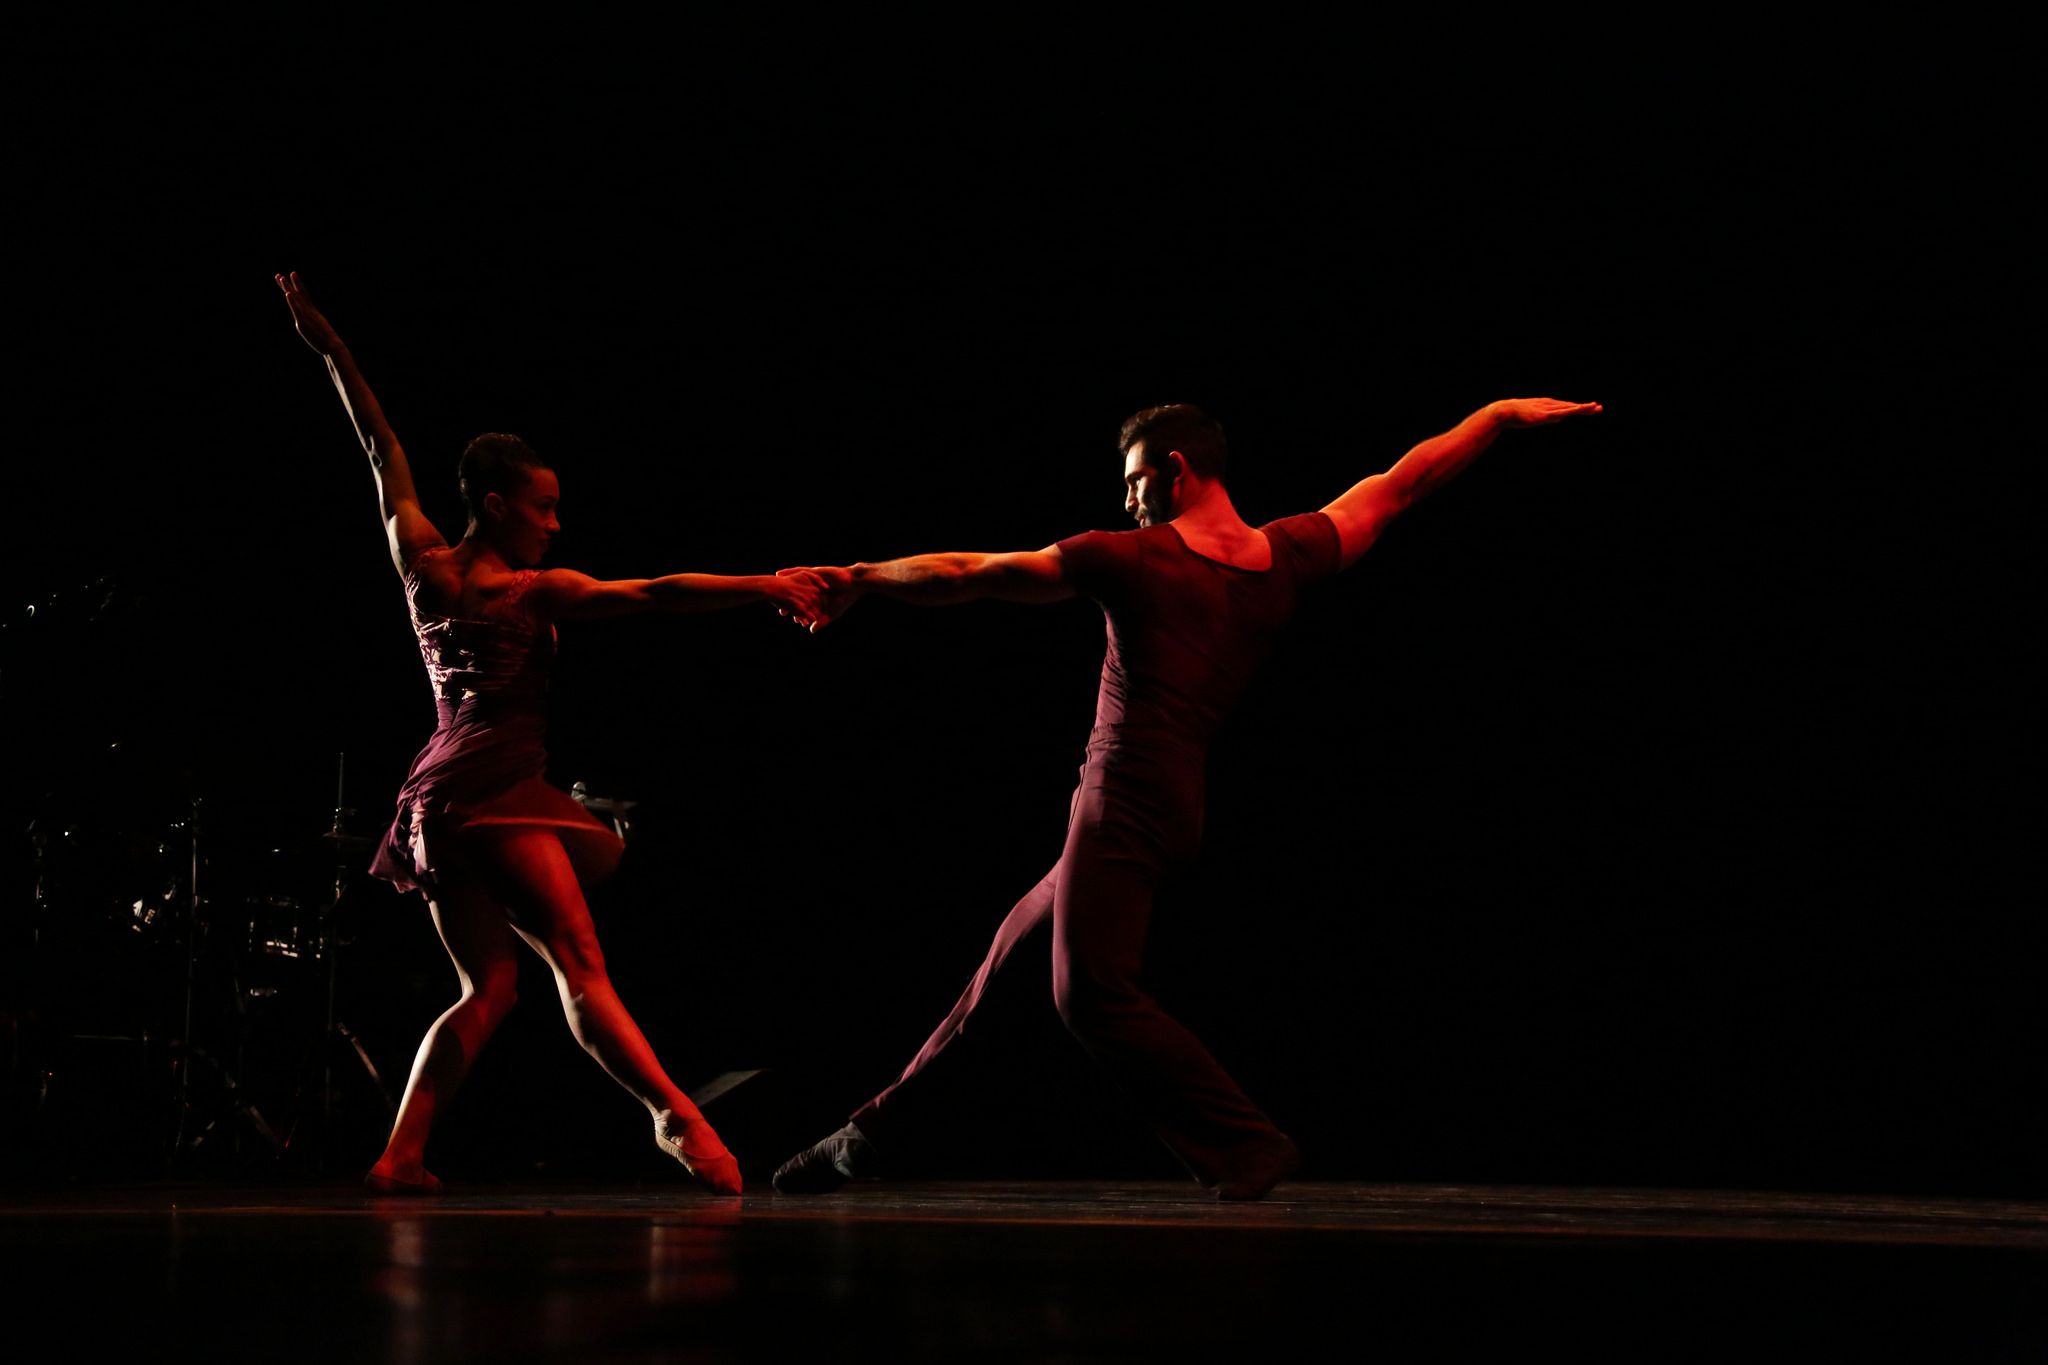 Dancers from Ballet Hispánico perform a duet onstage.